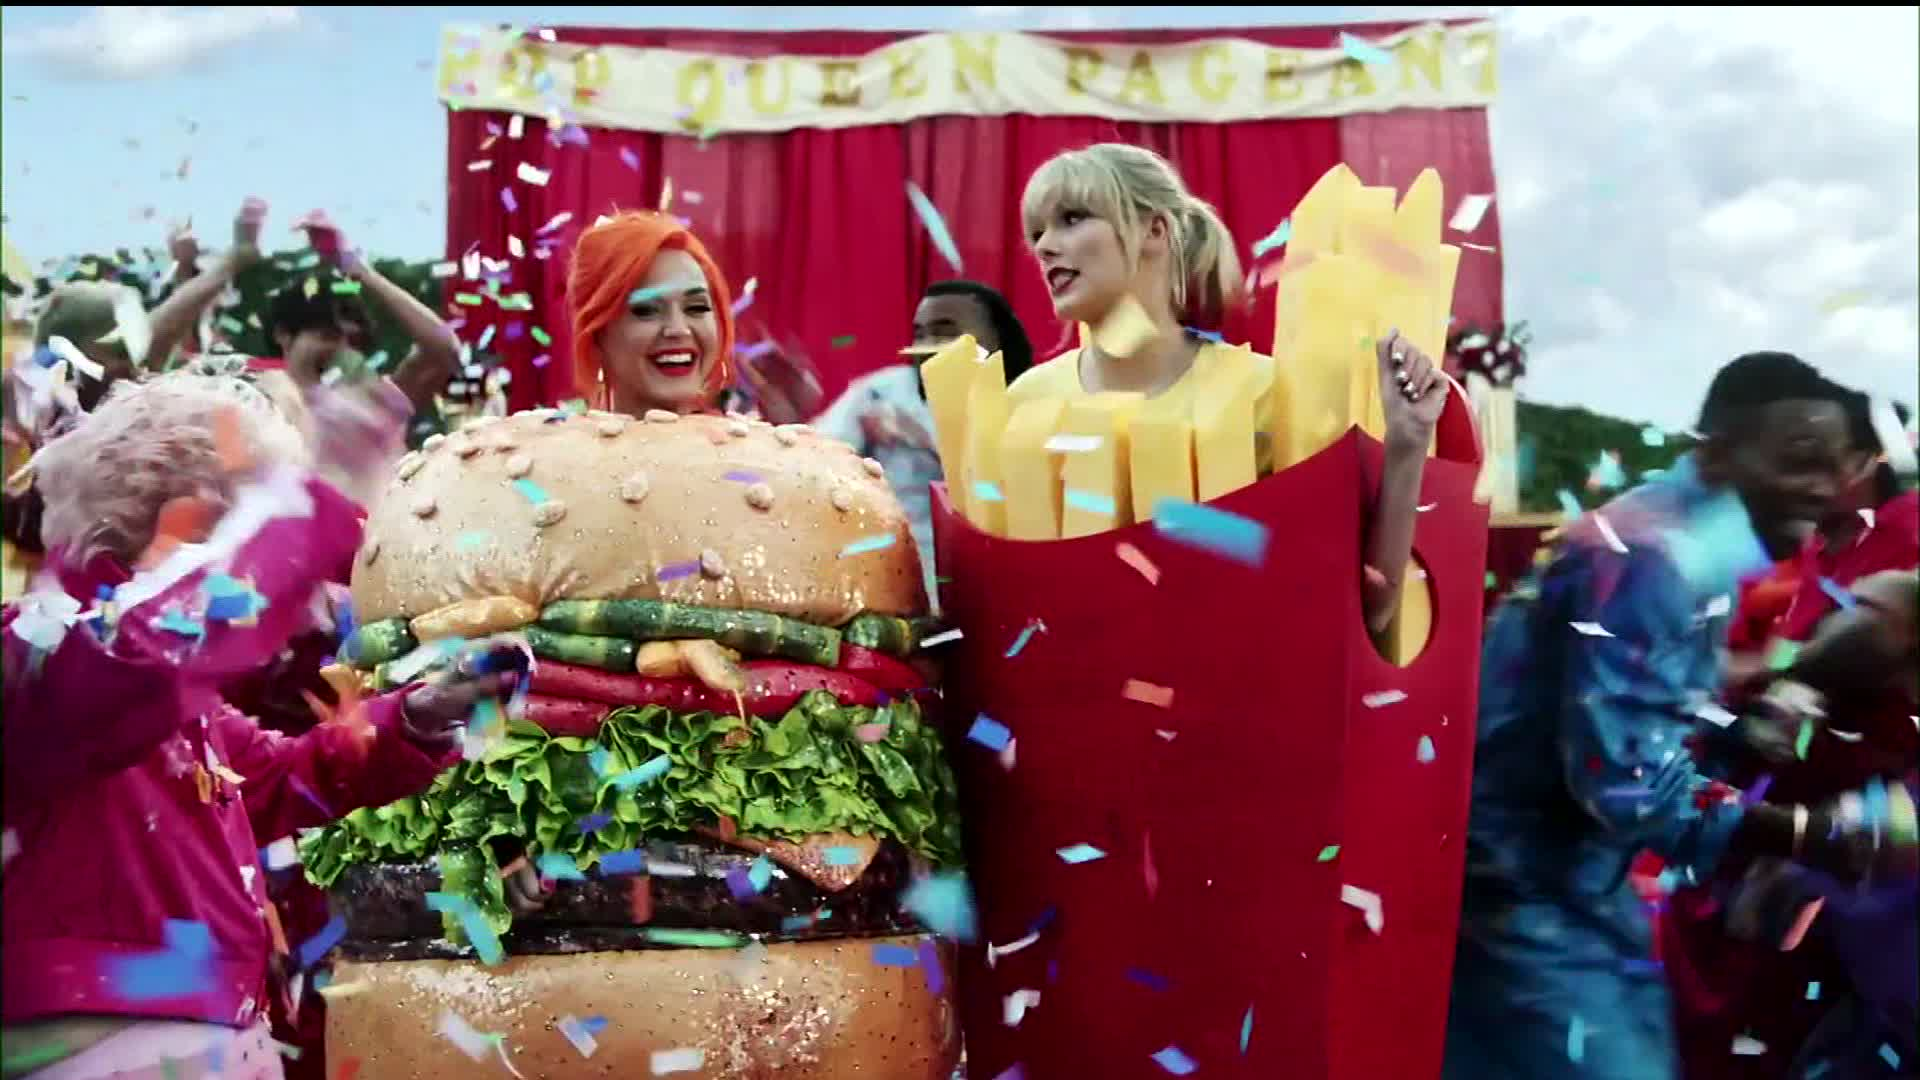 Taylor Swift Katy Perry Reunite In New Music Video Cnn Video